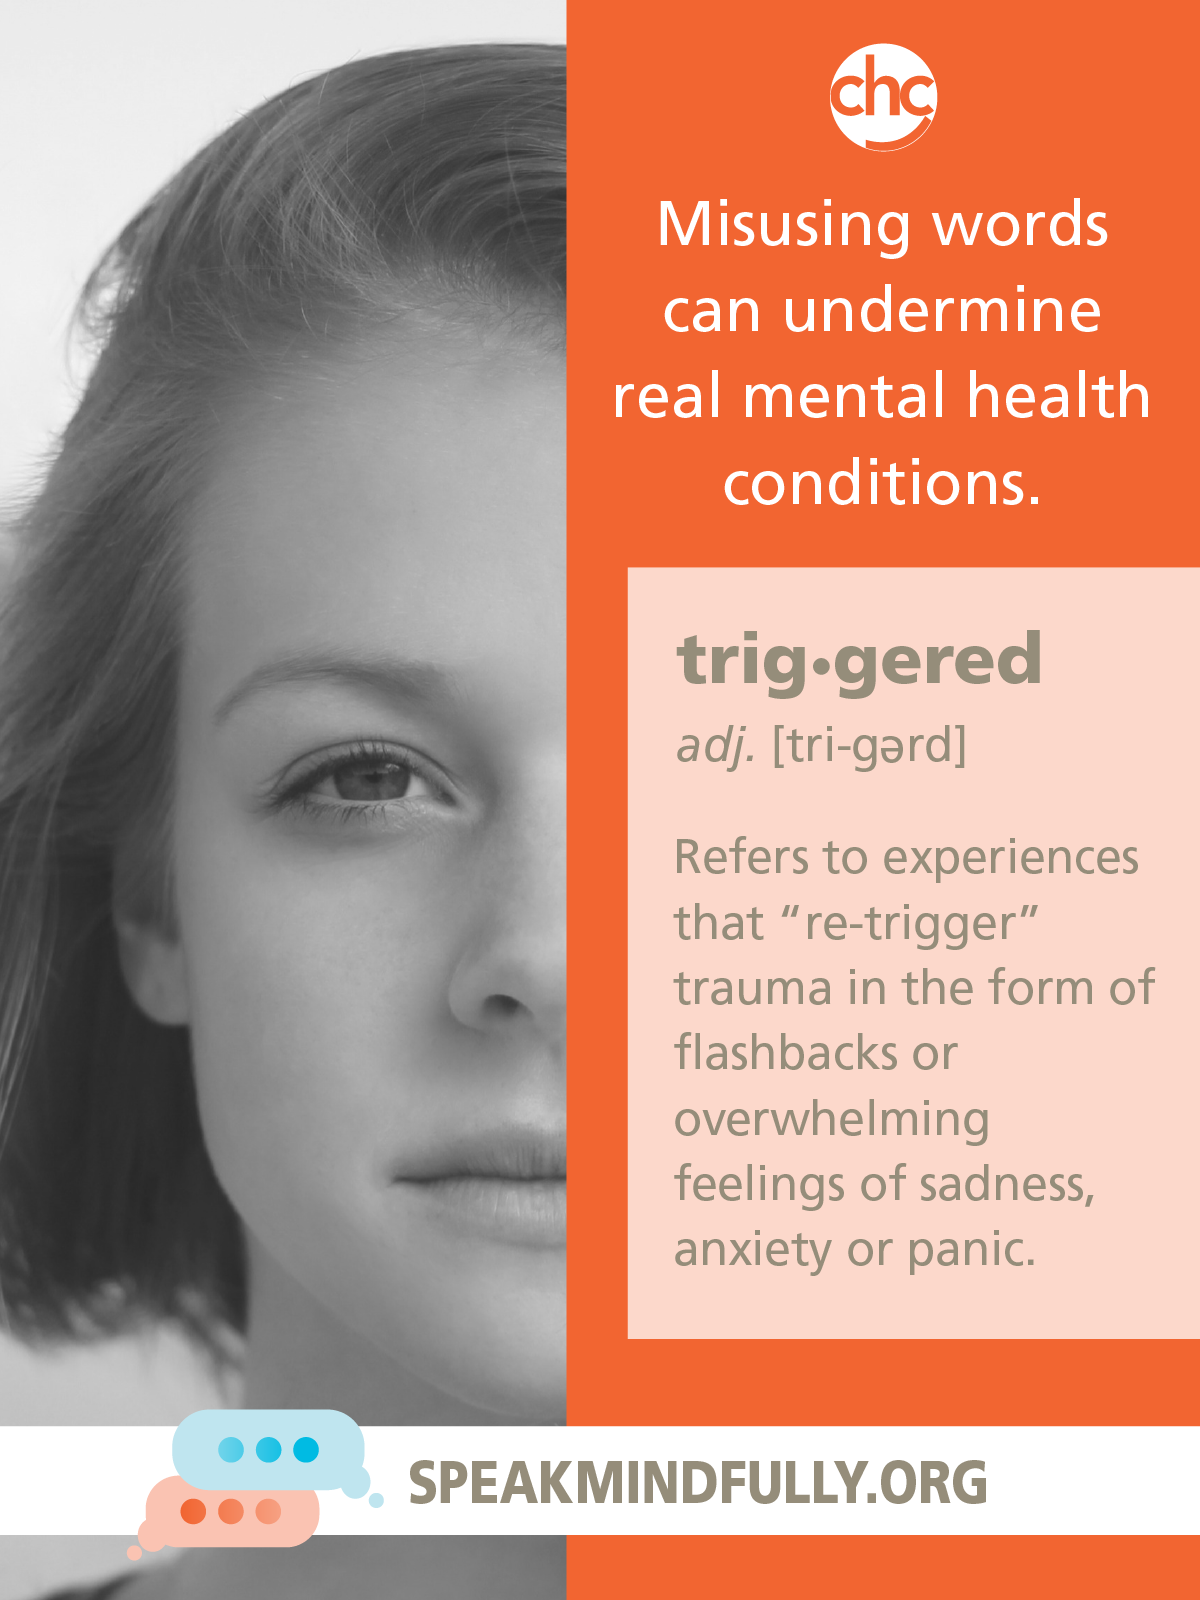 Speak Mindfully poster about triggered